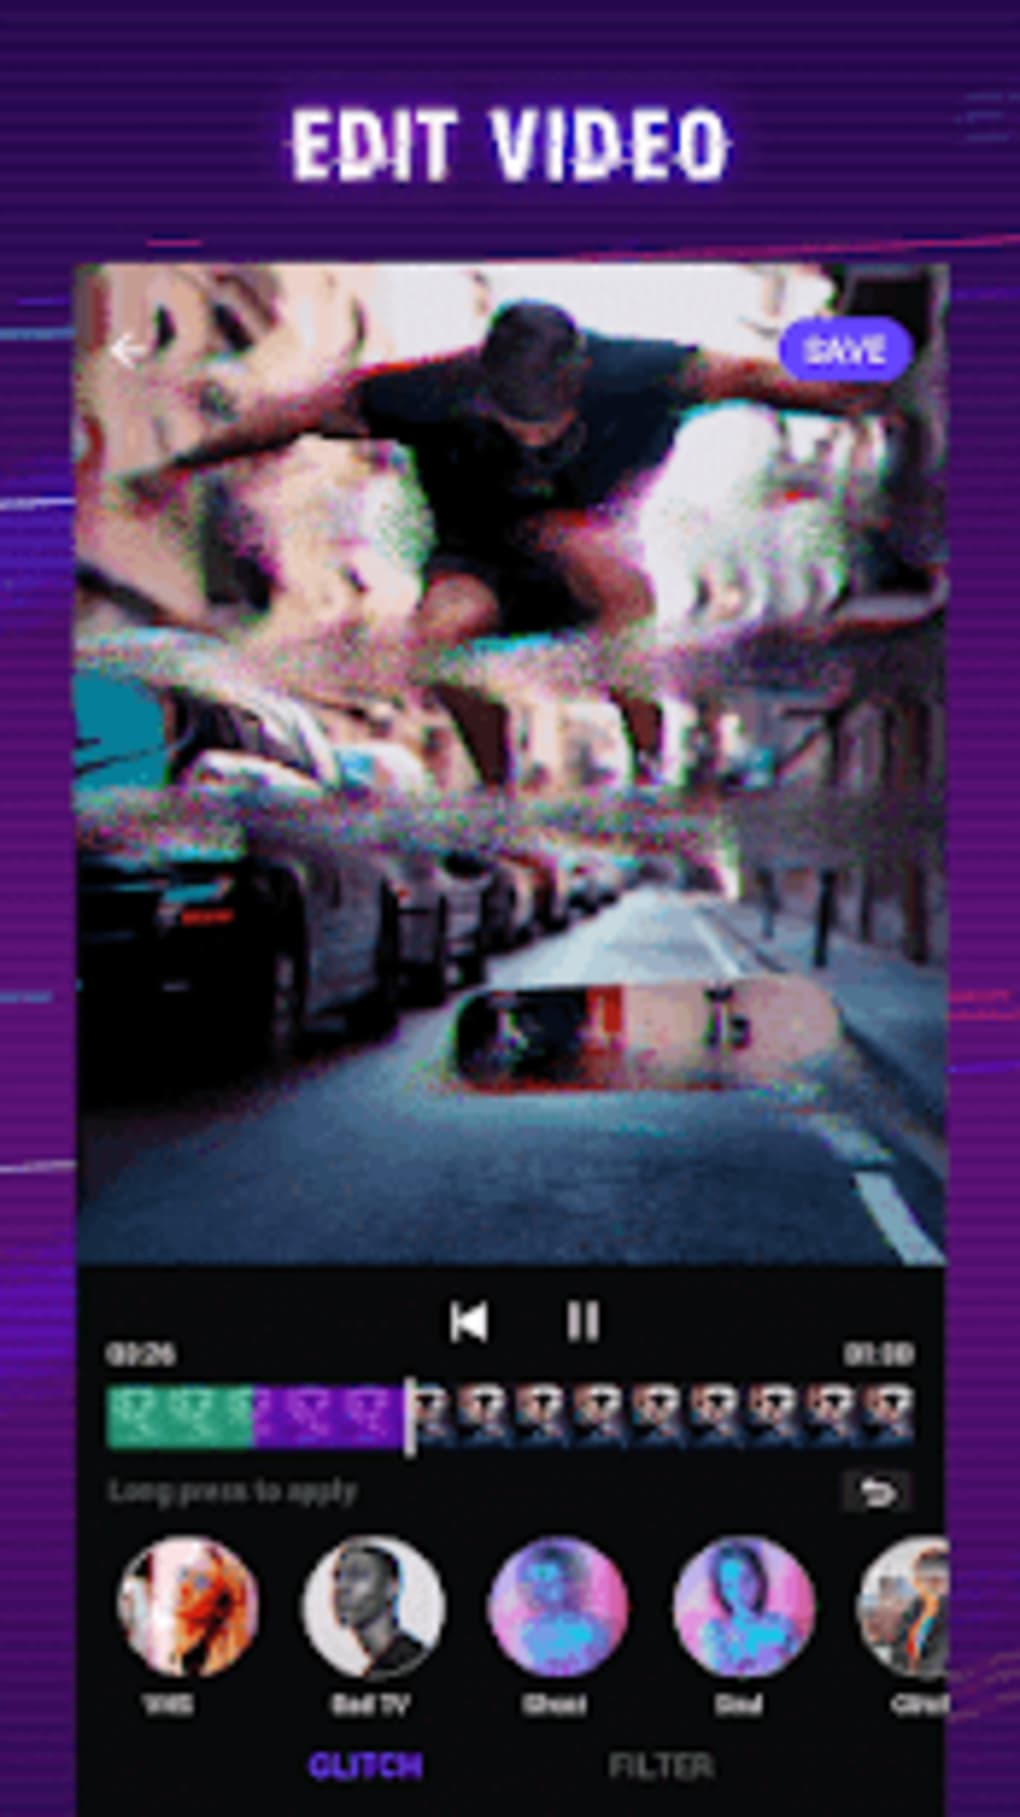 Glitch Video Effect - Video Editor Video Effects for Android